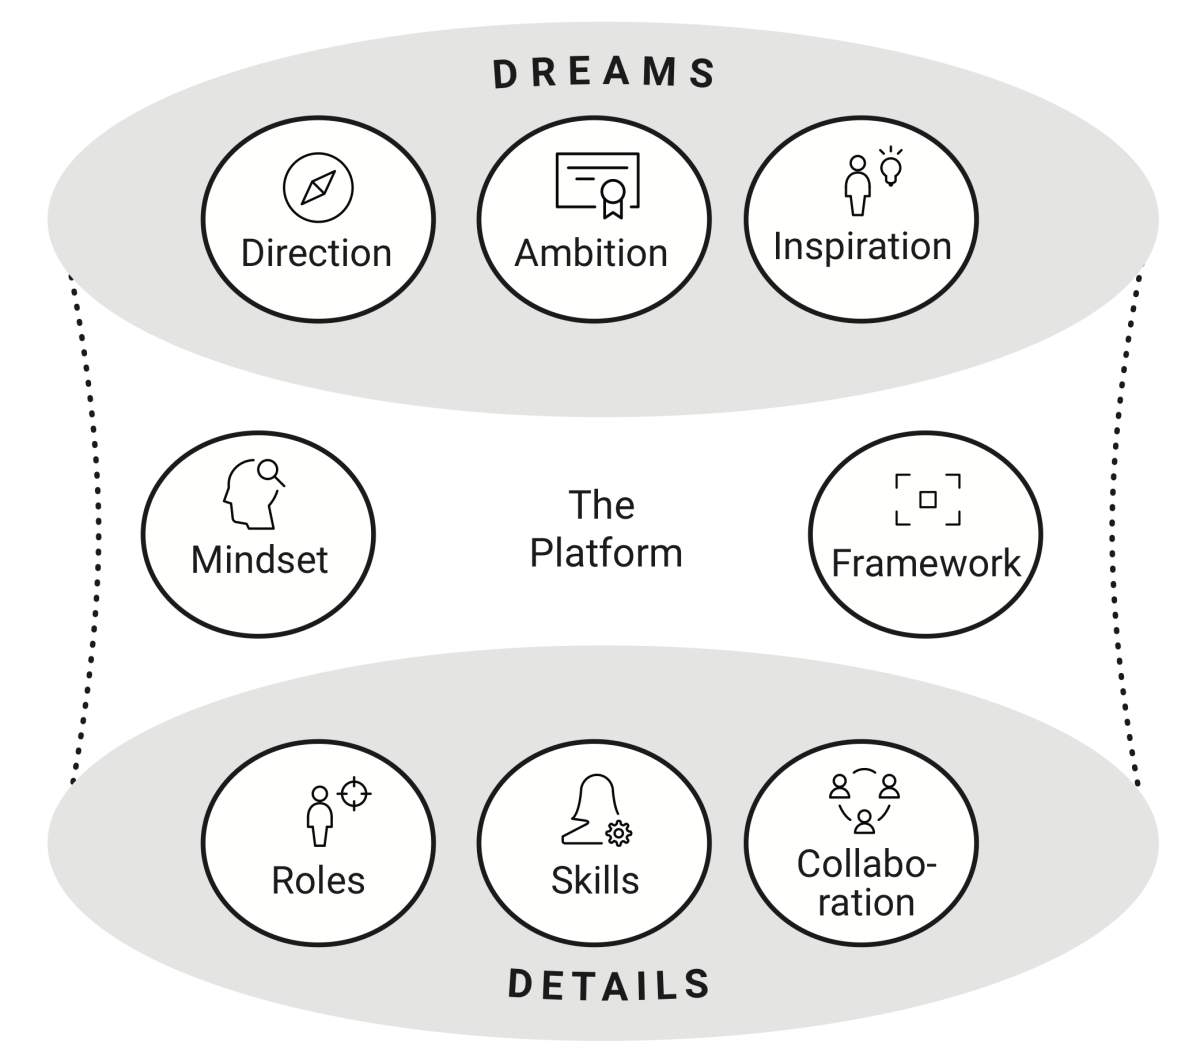 Dreams and Details Leadership Model